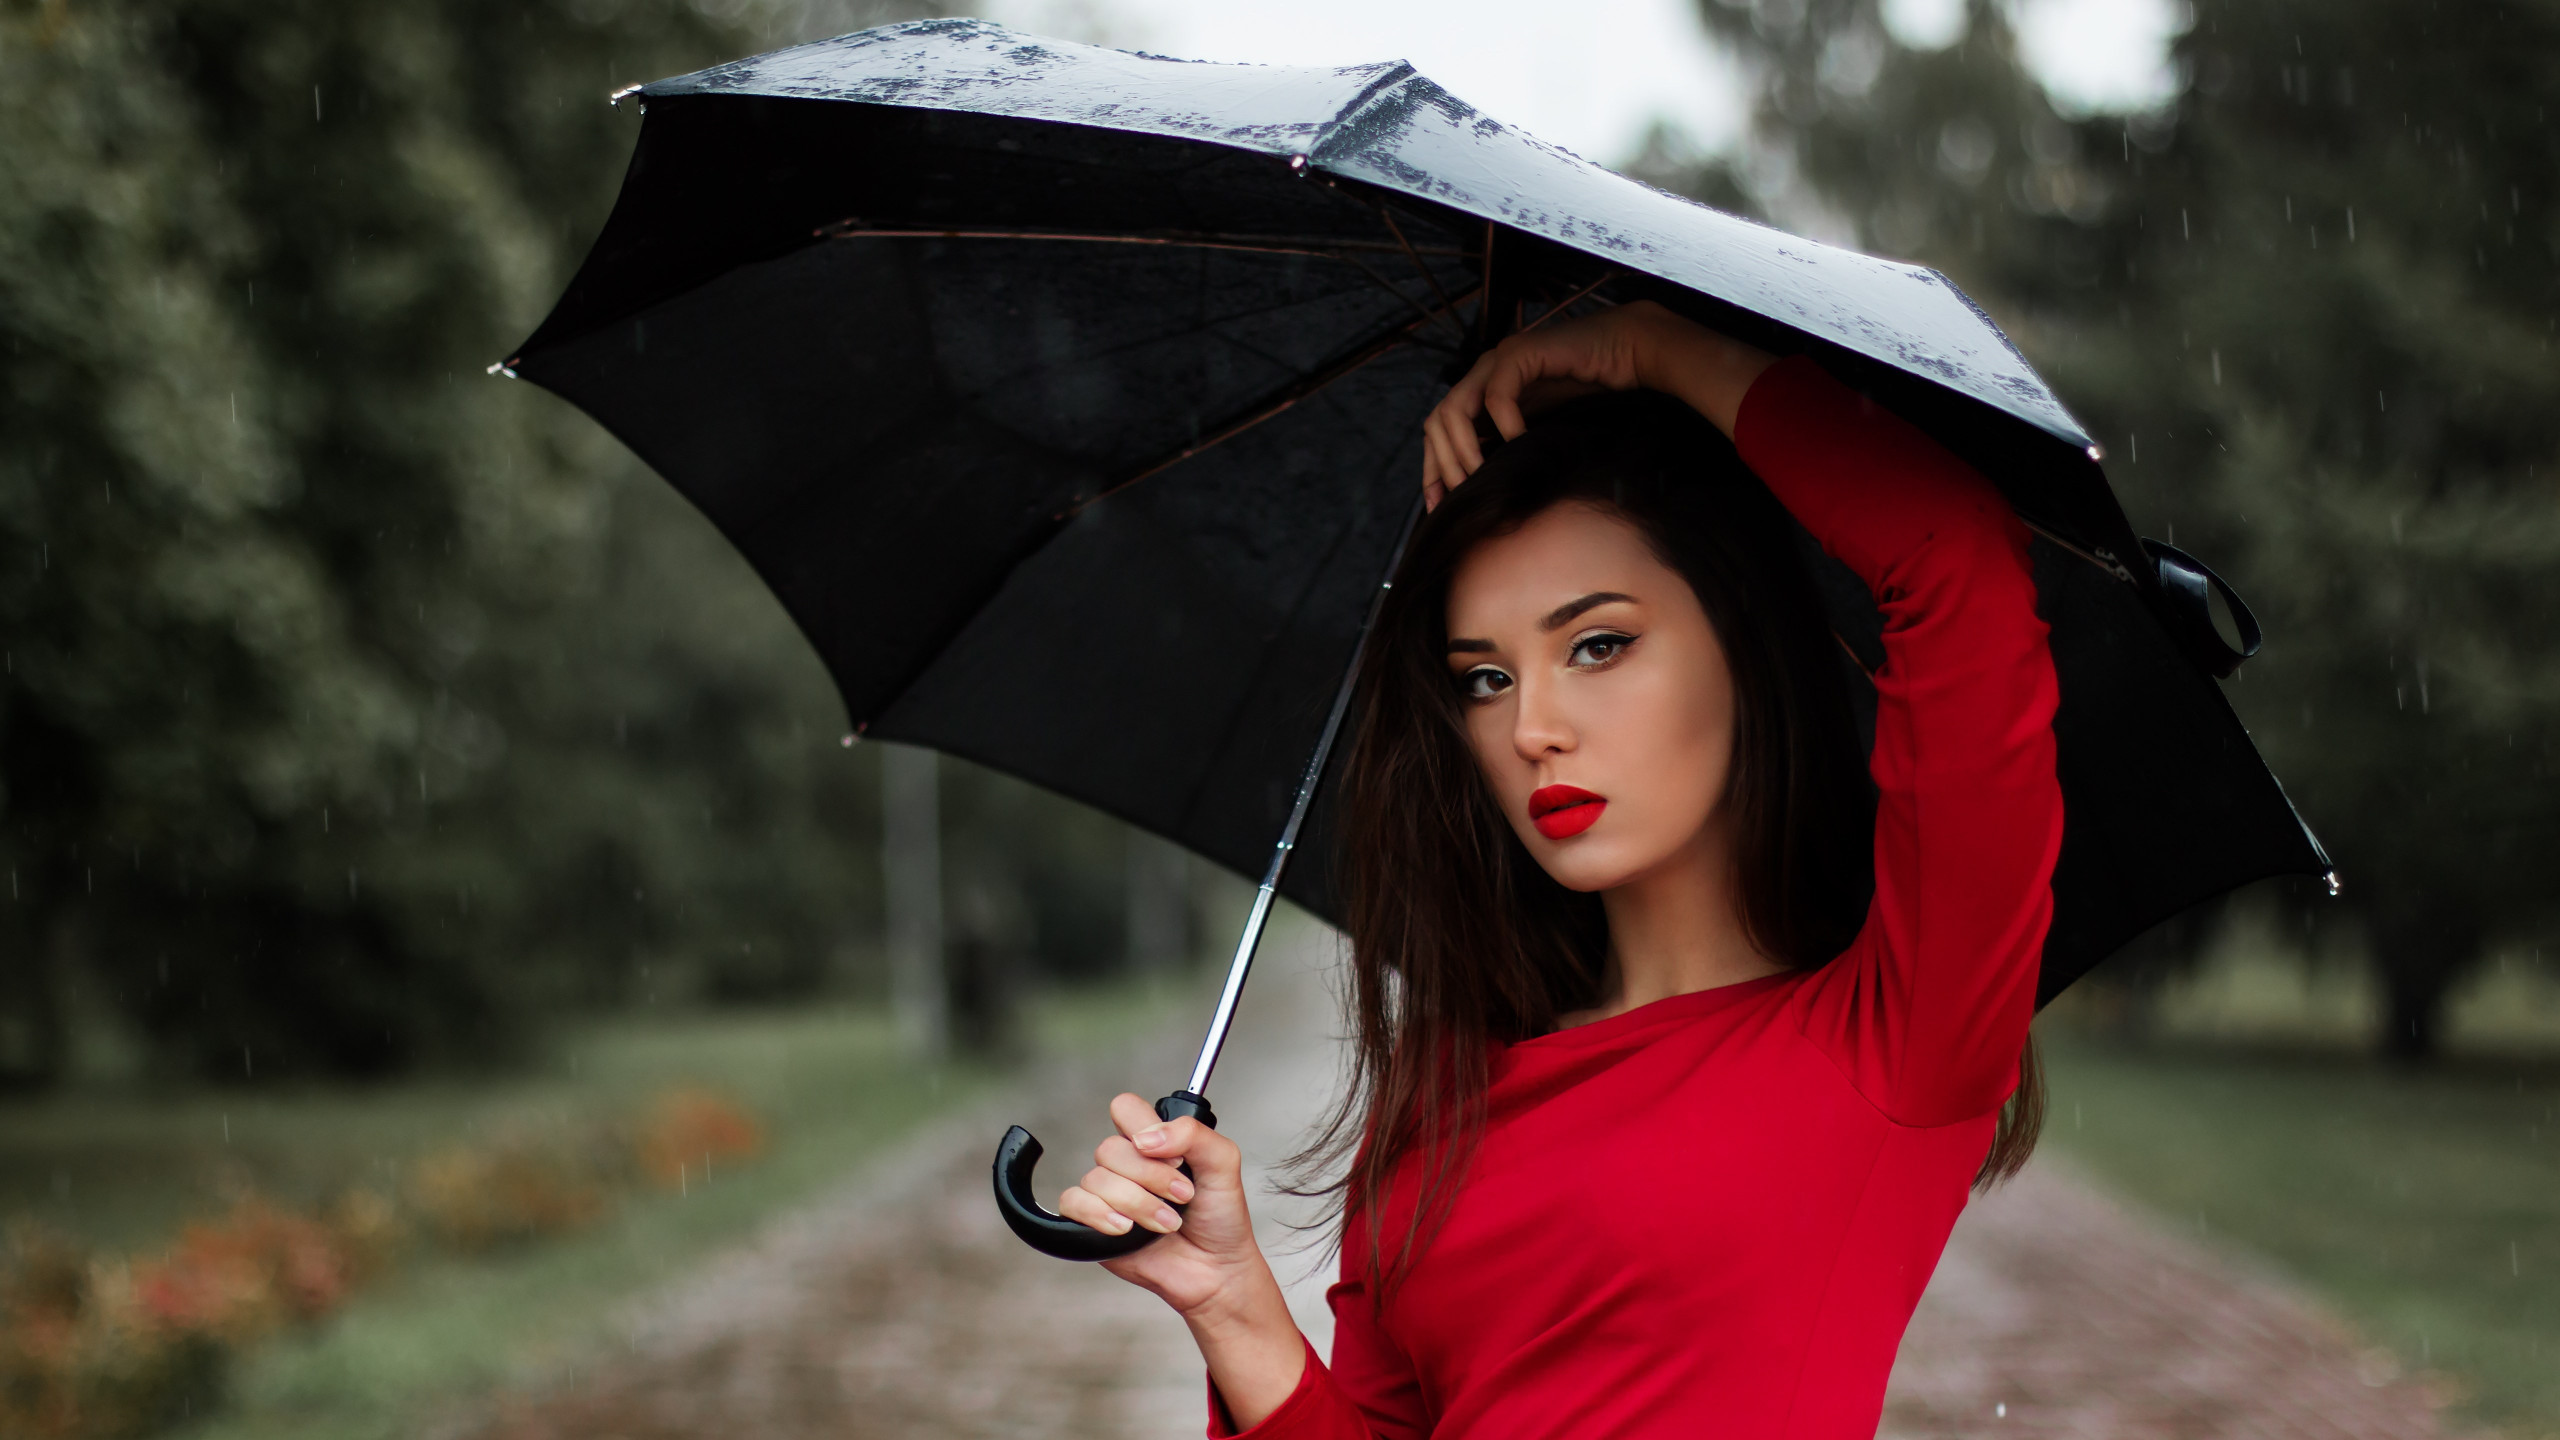 Beauitful girl in a rainy day wallpaper 2560x1440